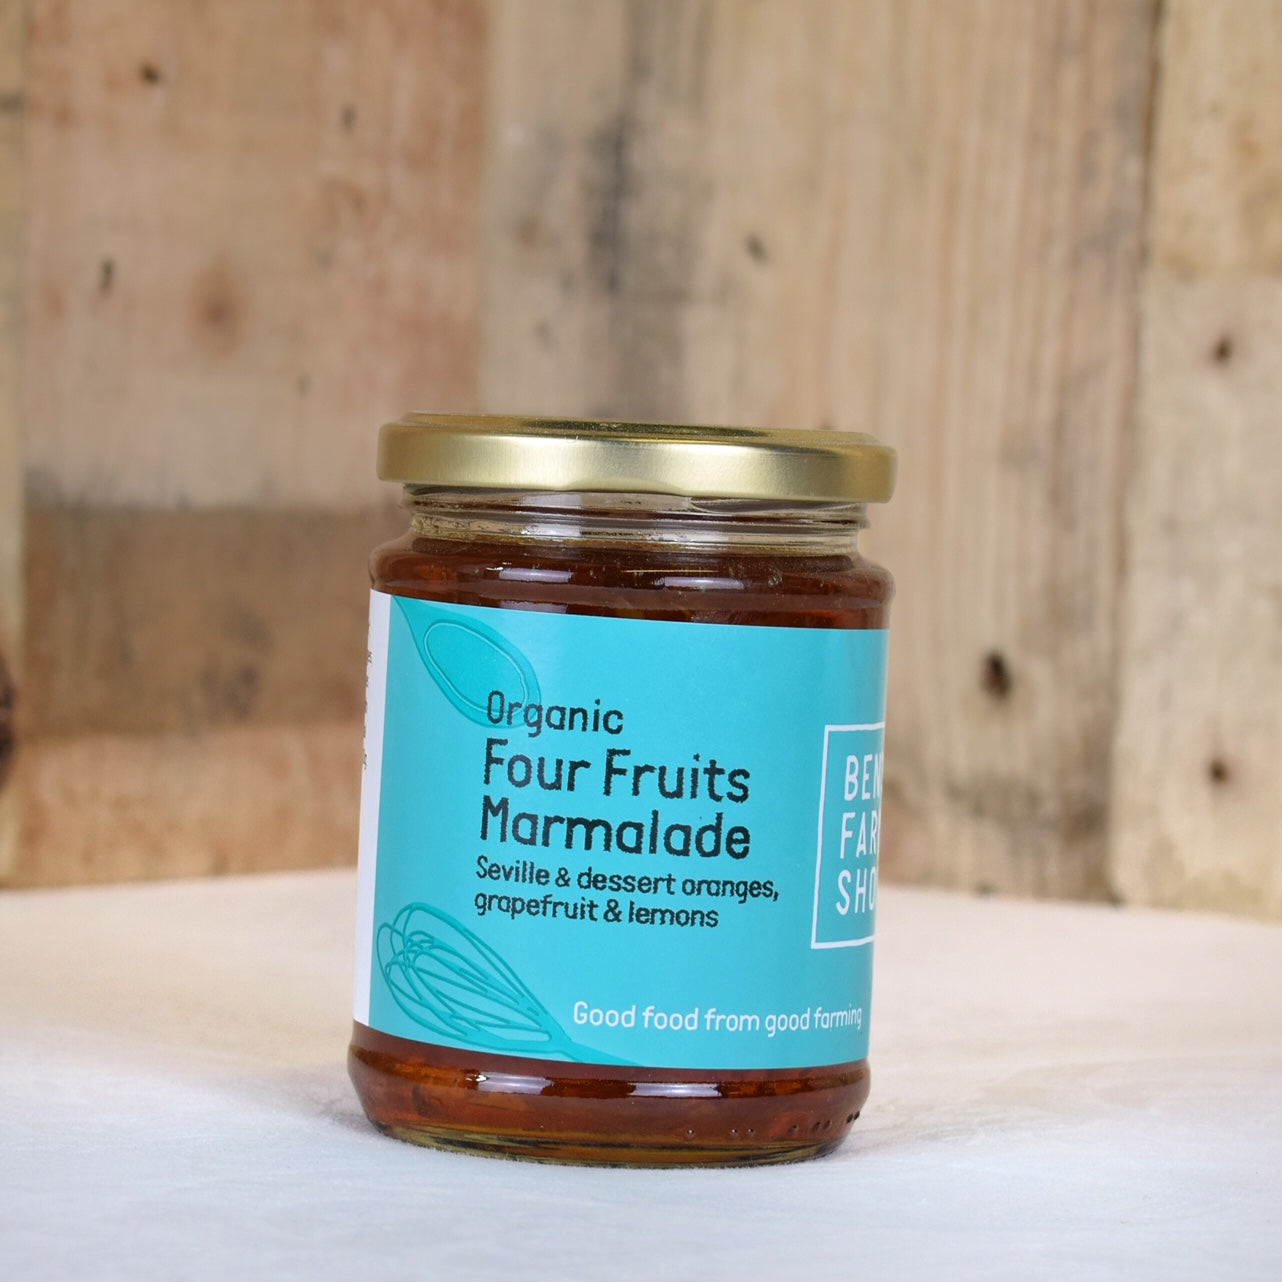 Four fruits marmalade